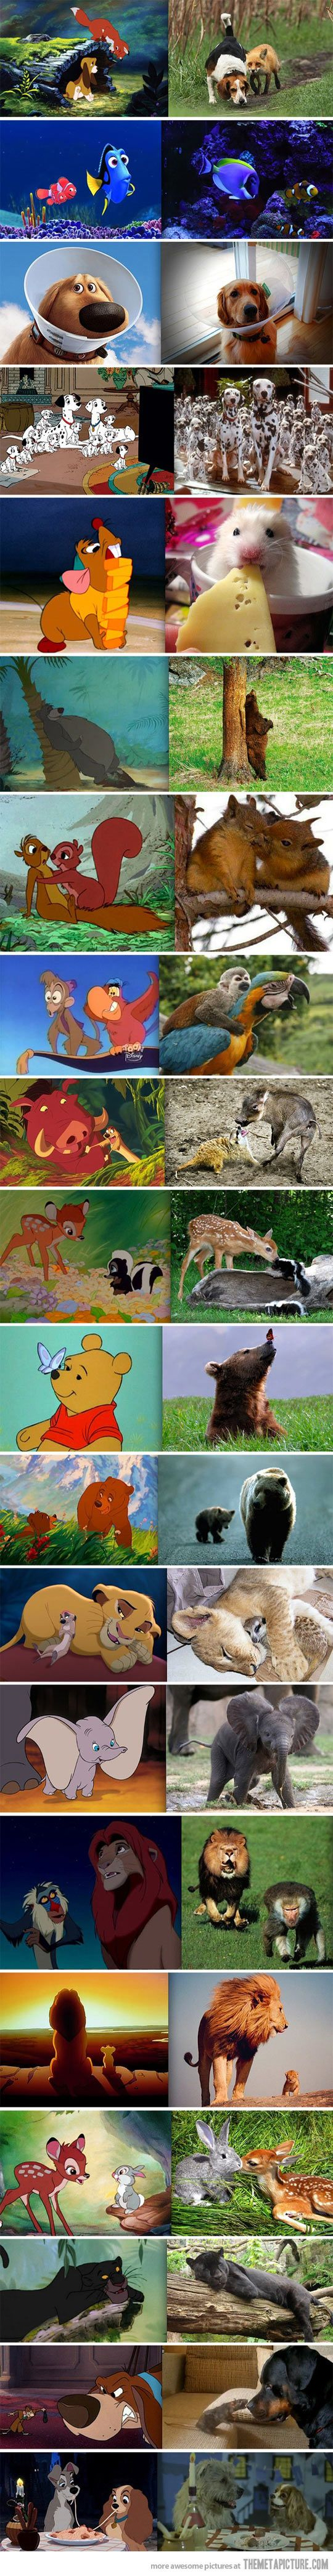 Classic Disney movies turned into reality…